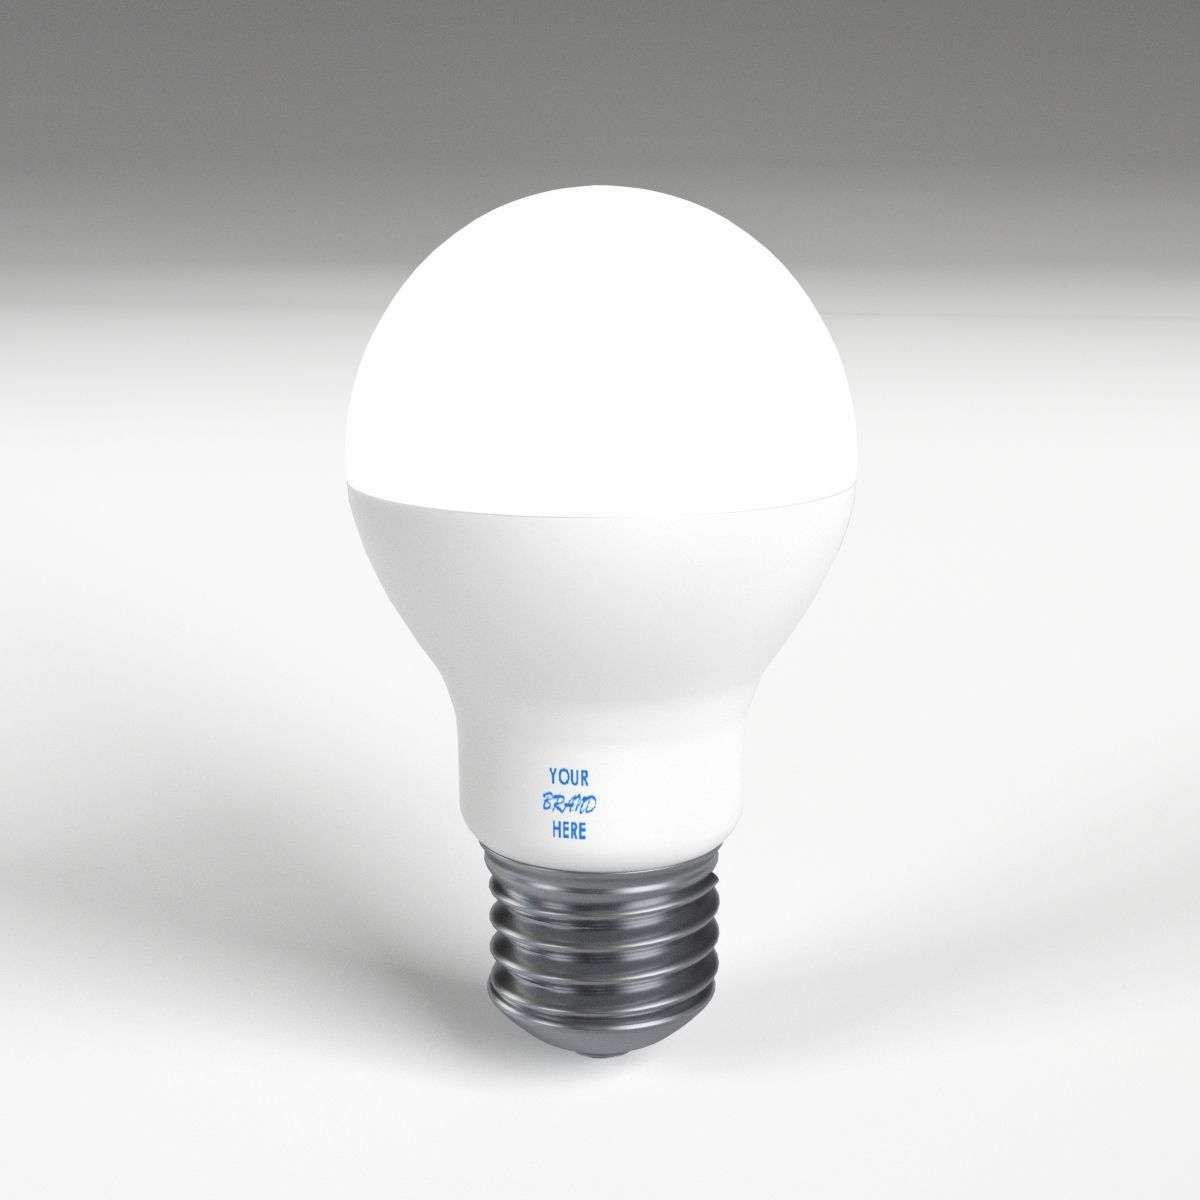 Led Fluorescent Light Bulb Lamp 2 Fluorescent Led Light Lamp Led Fluorescent Light Led Fluorescent Light Bulb Lamp